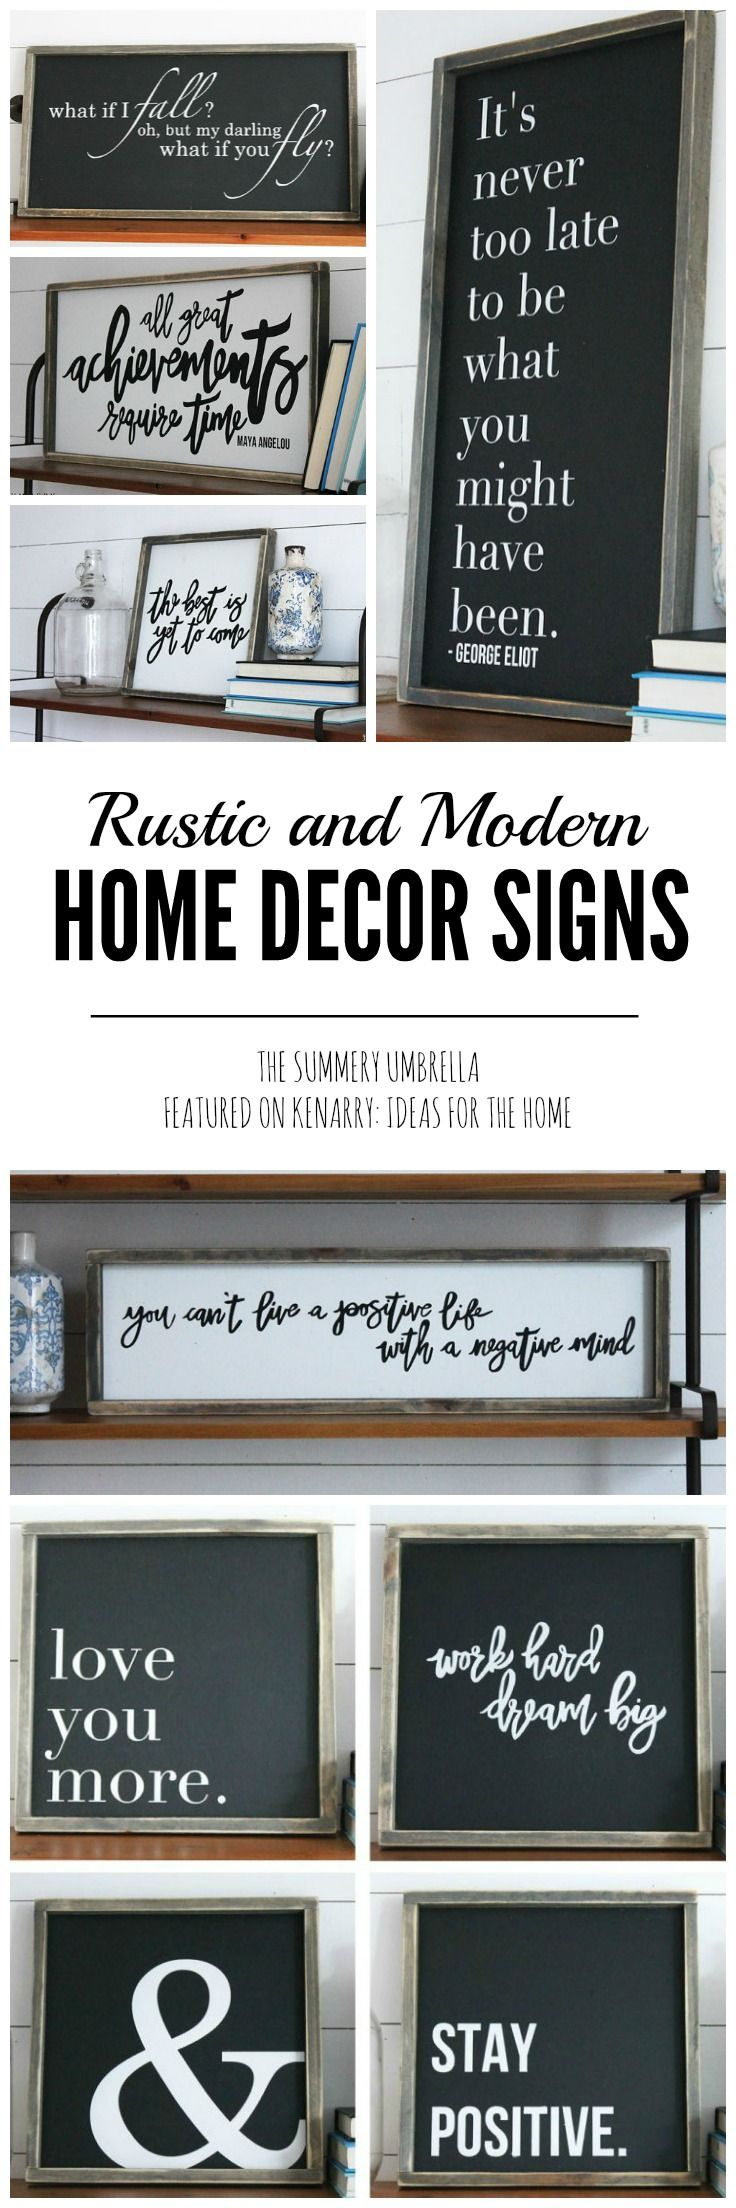 Wall Decor Signs For Home Classy Best 25 Wall Signs Ideas On Pinterest  Diy Signs Decor For Design Ideas